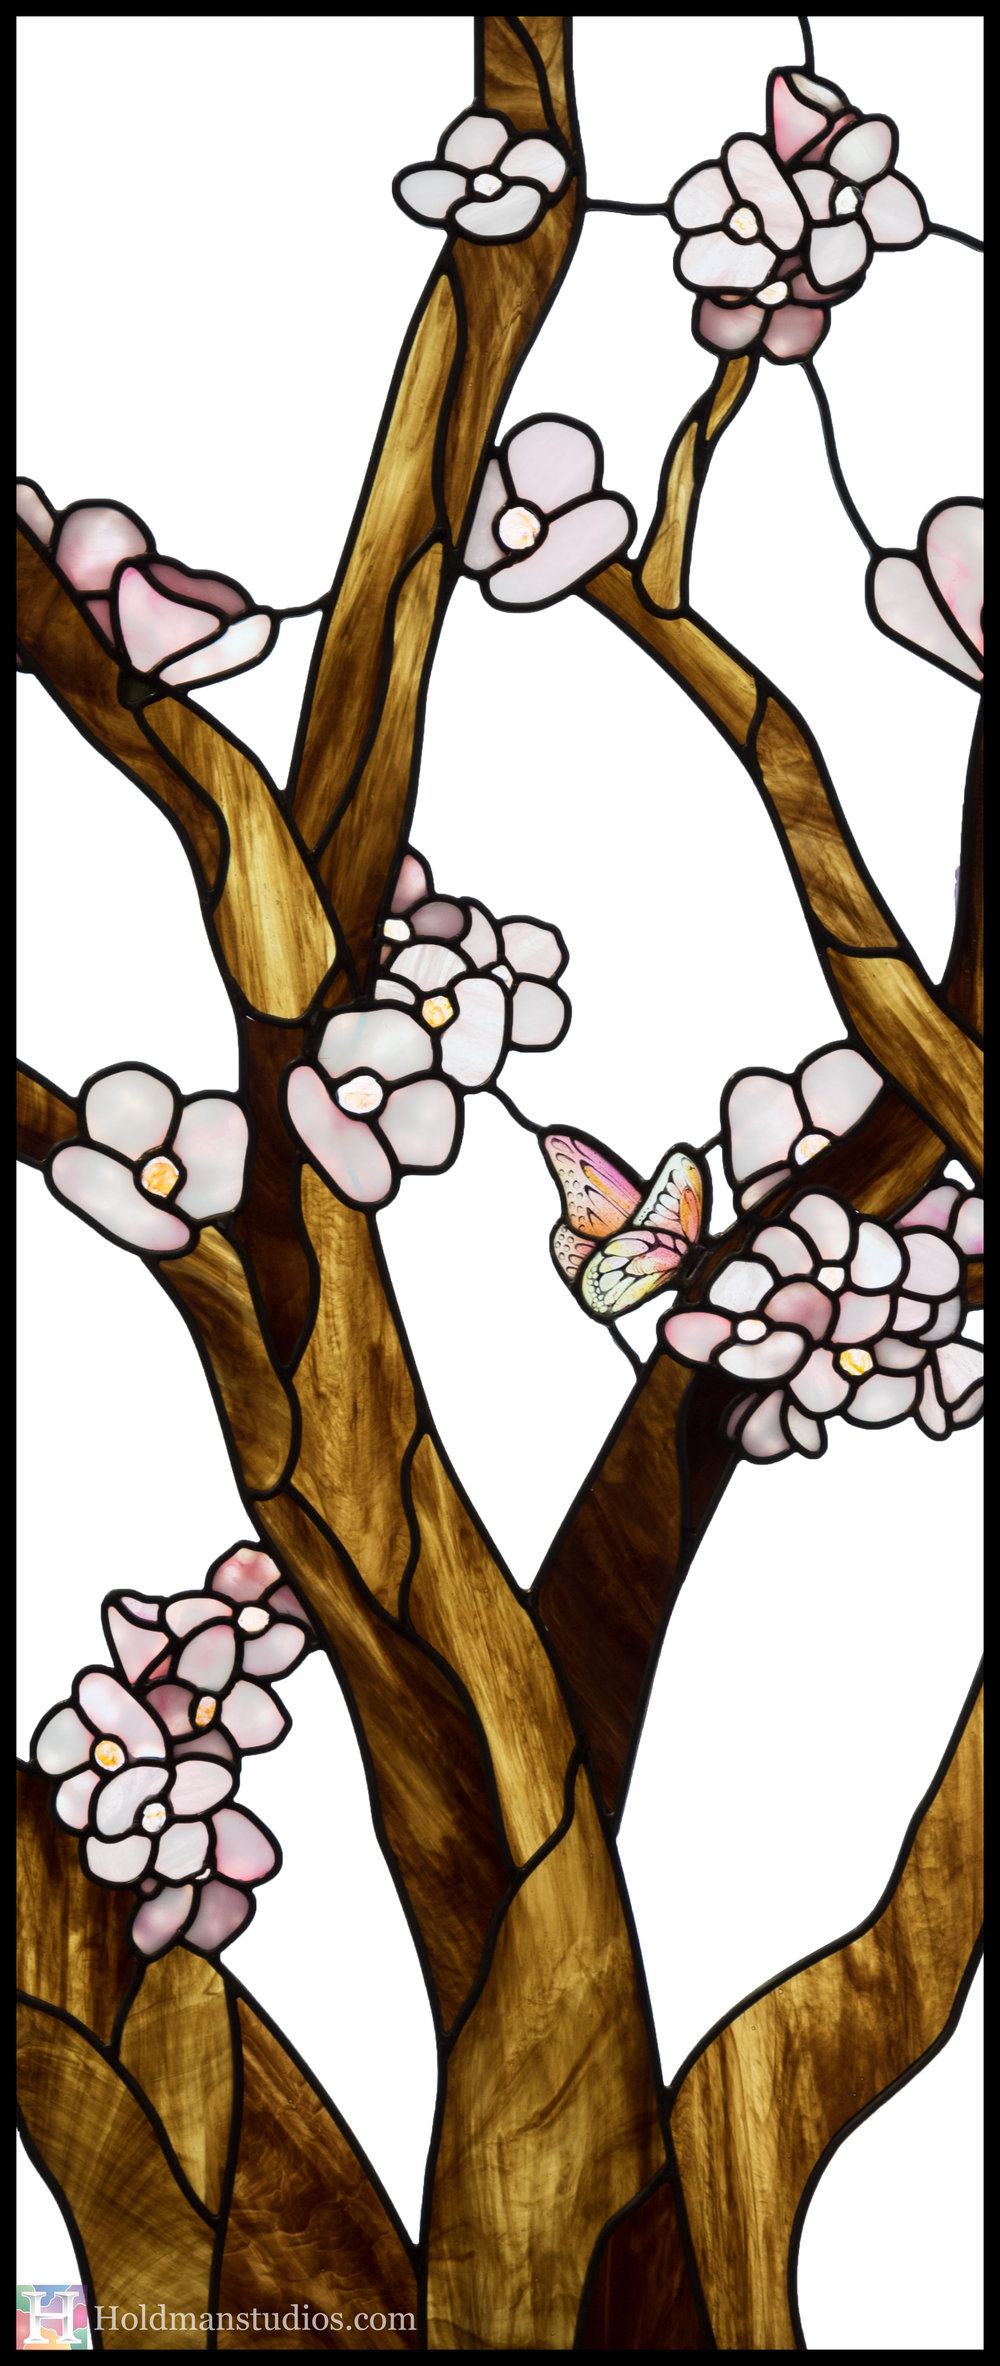 Holdman-Studios-Stained-Glass-Window-Cherry-Tree-Branches-Blossom-Flowers-Butterfly-Right.jpg